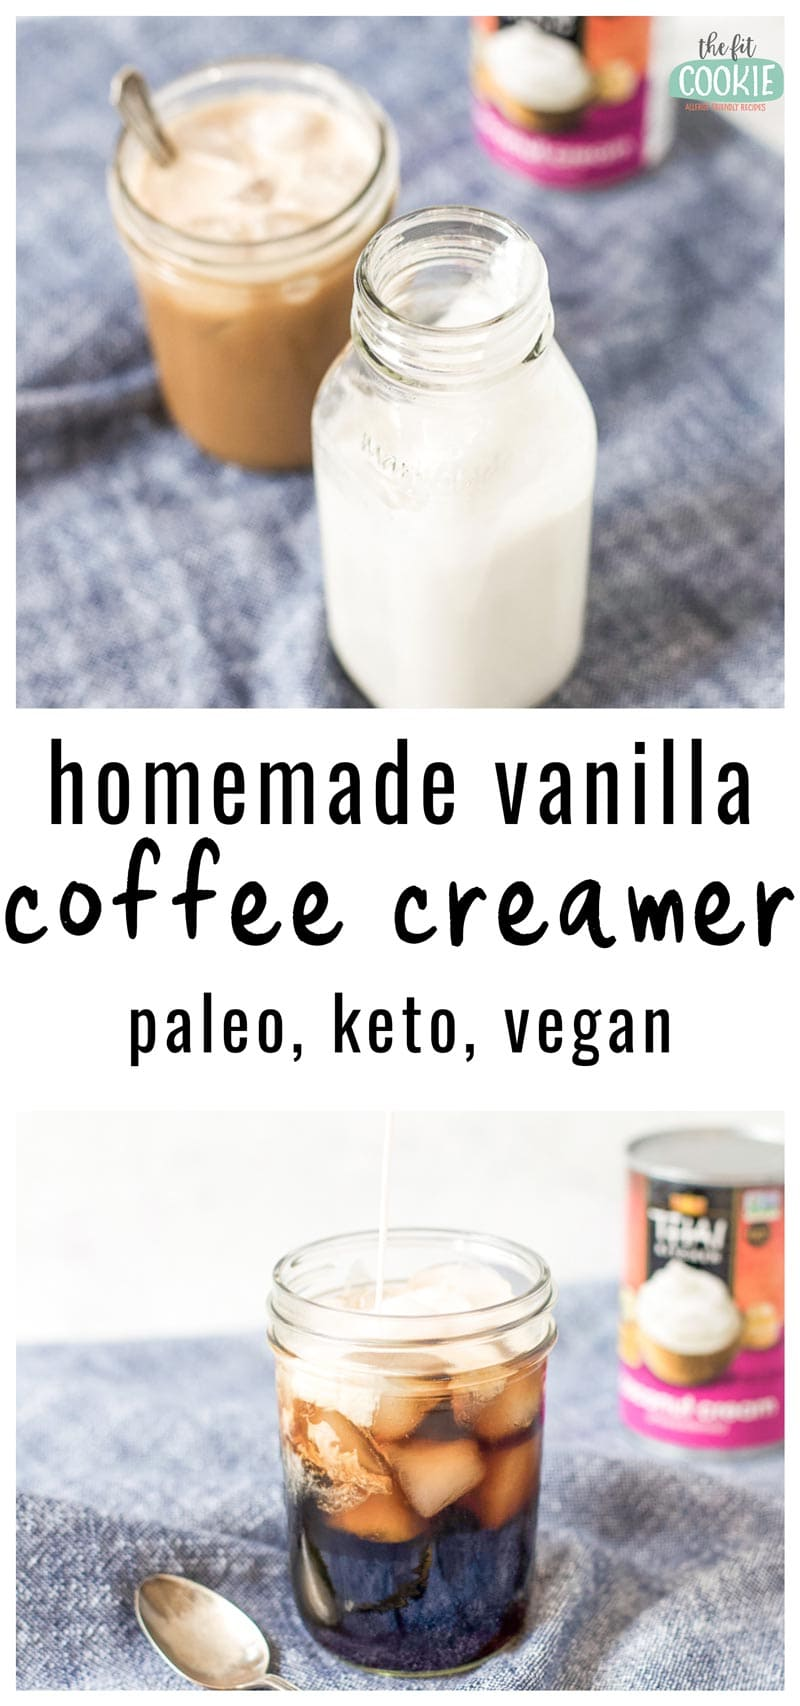 image collage of homemade vanilla coffee creamer in a glass bottle